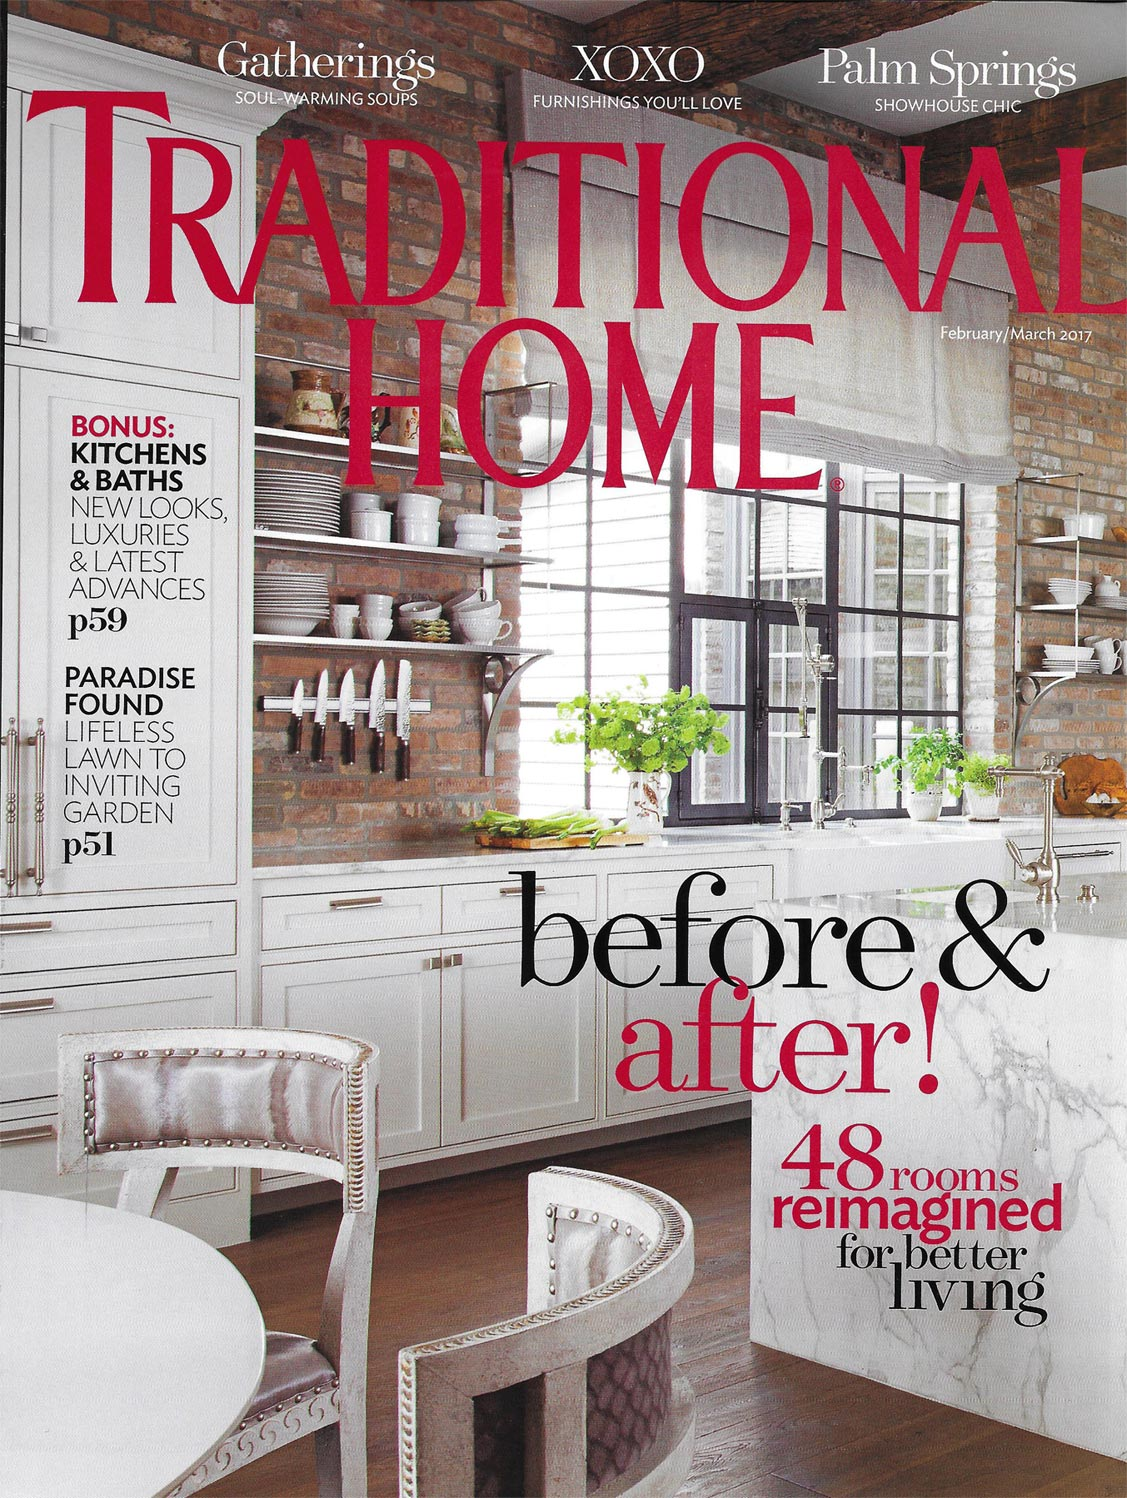 Traditional Home, Feb/Mar 2017, 1 of 3